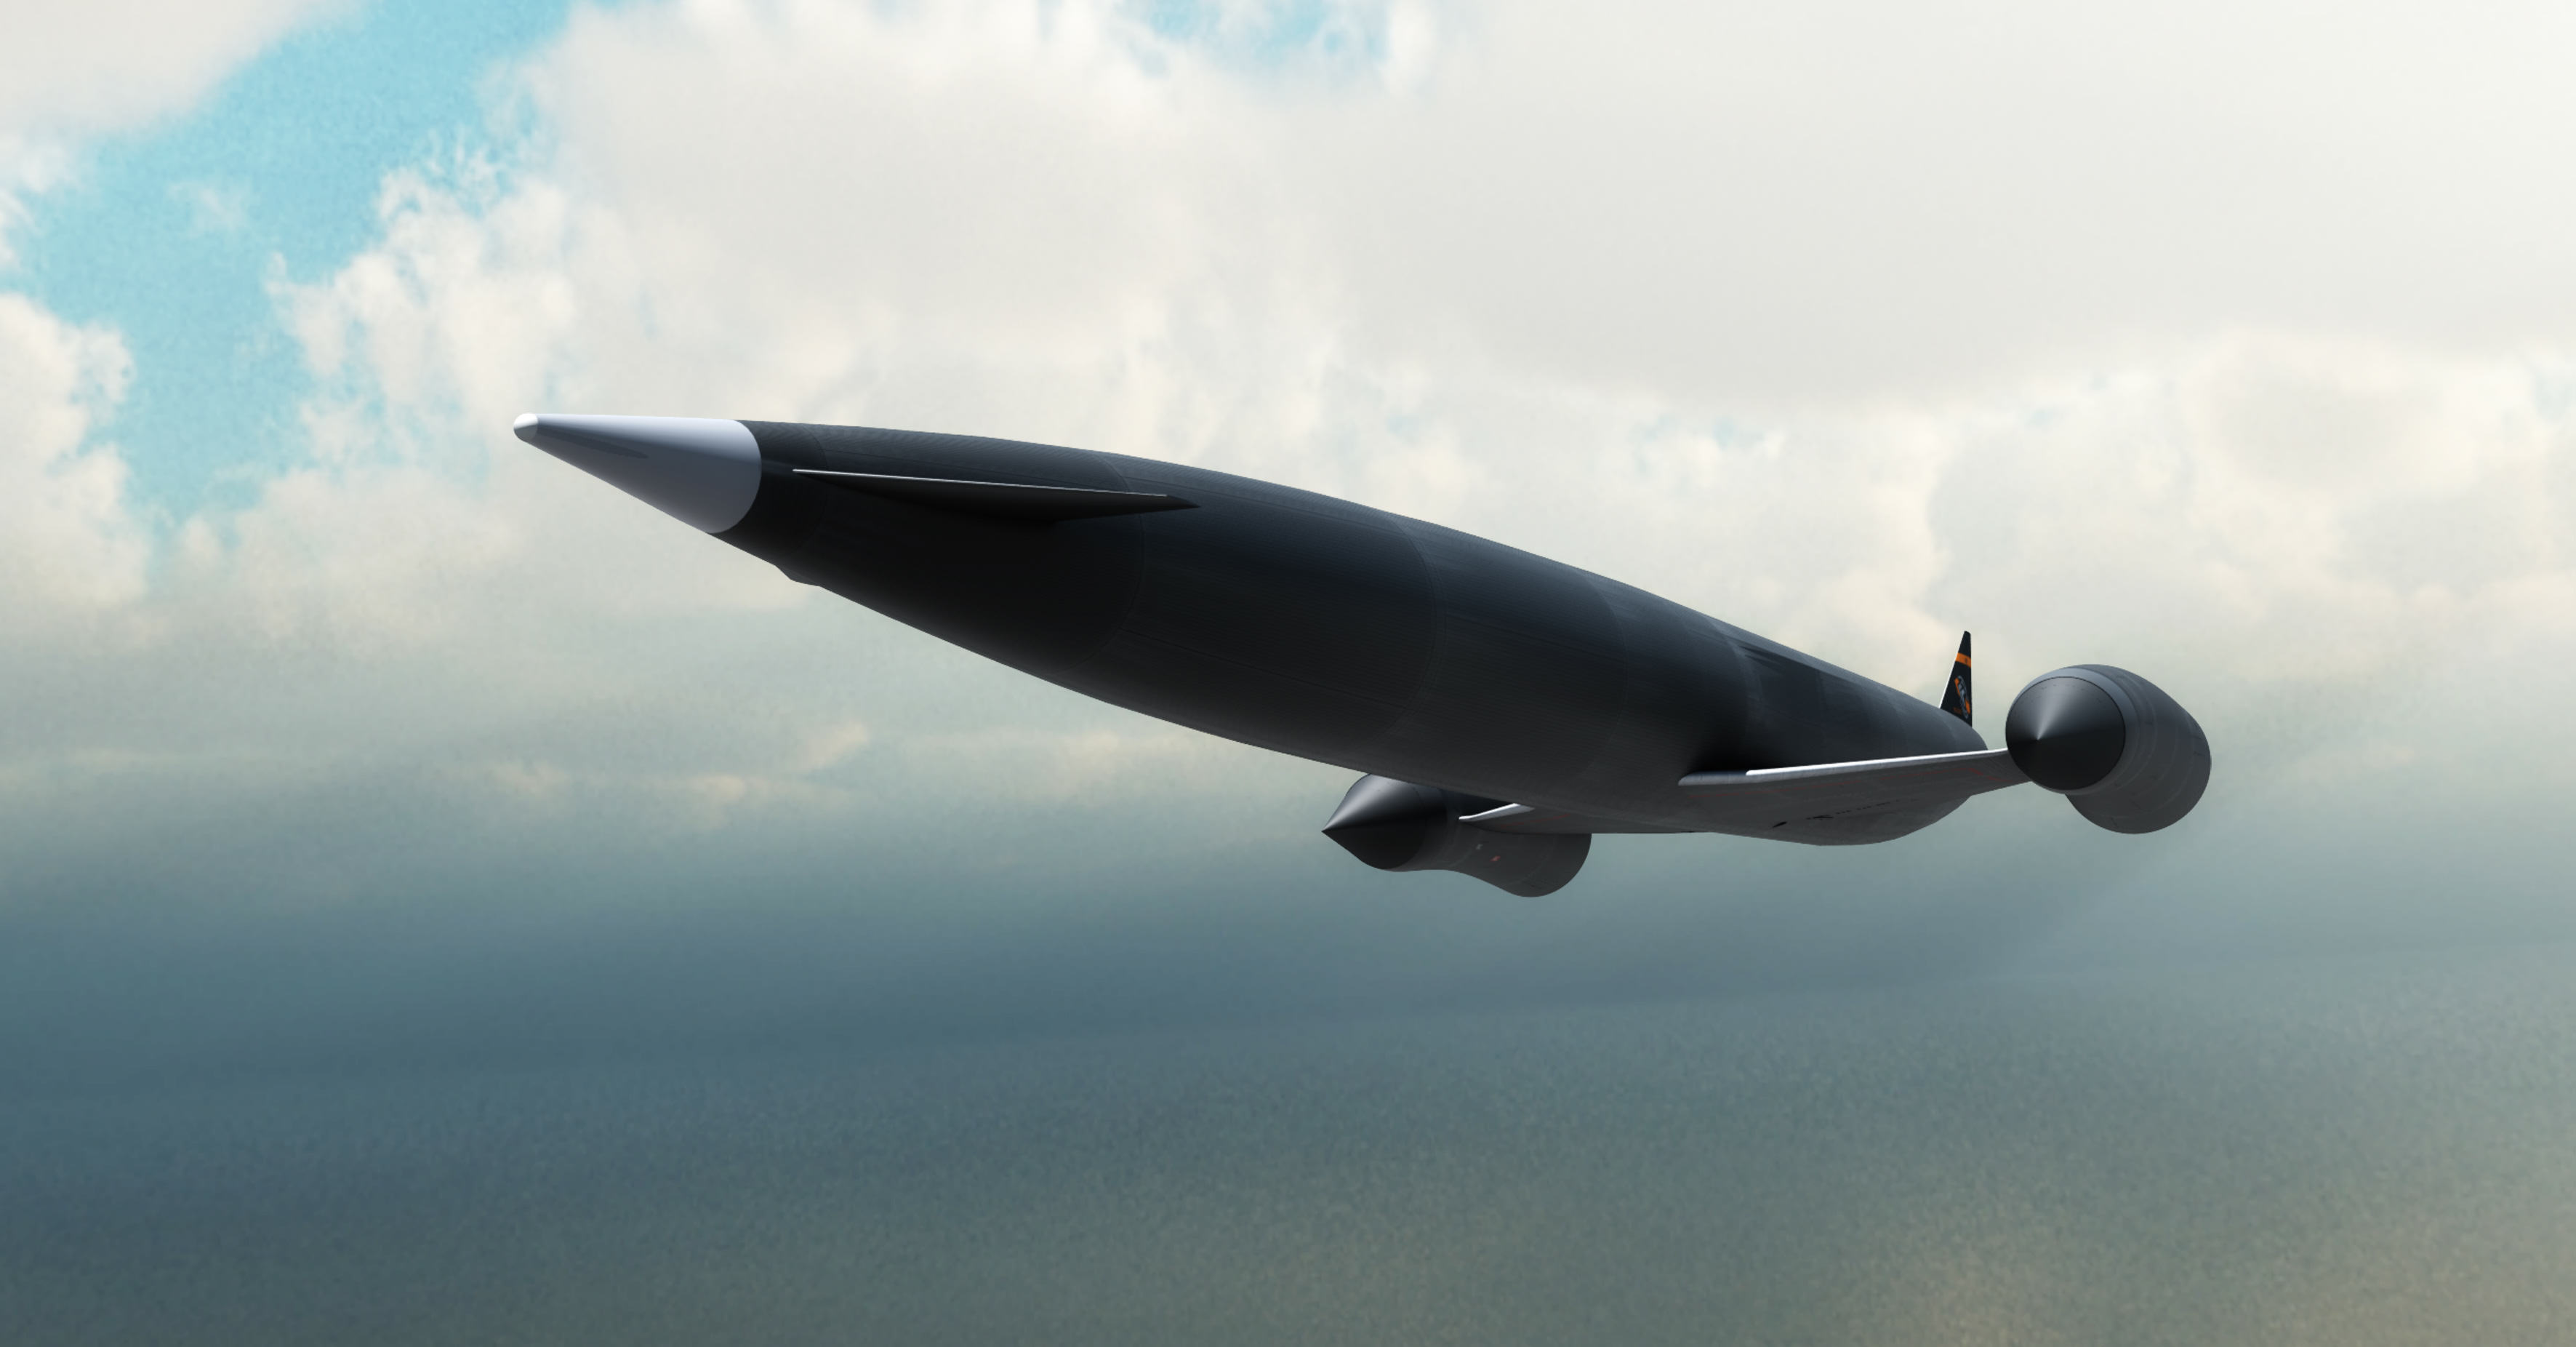 Insane New Super Plane Could Make Low Cost Space Travel Possible UNILAD skylon flight 2l22531